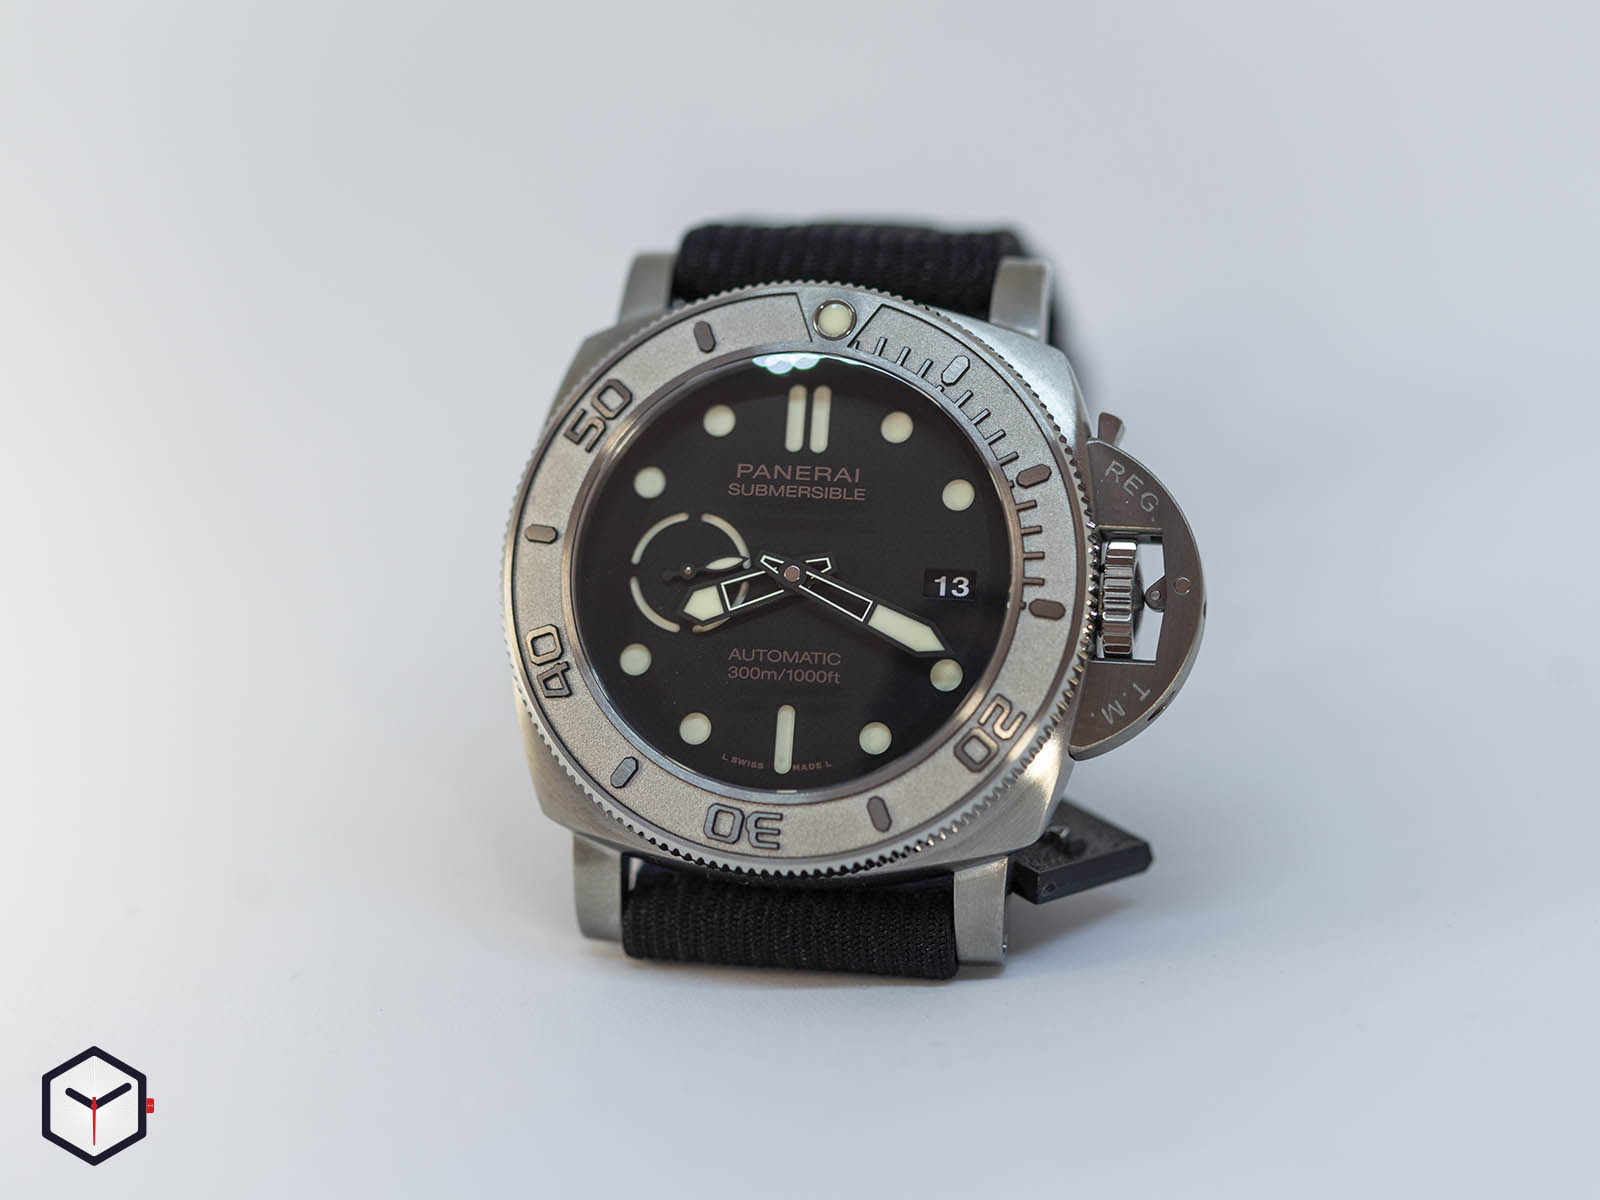 pam00984-officine-panerai-submersible-mike-horn-edition-47mm-sihh-2019-1.jpg